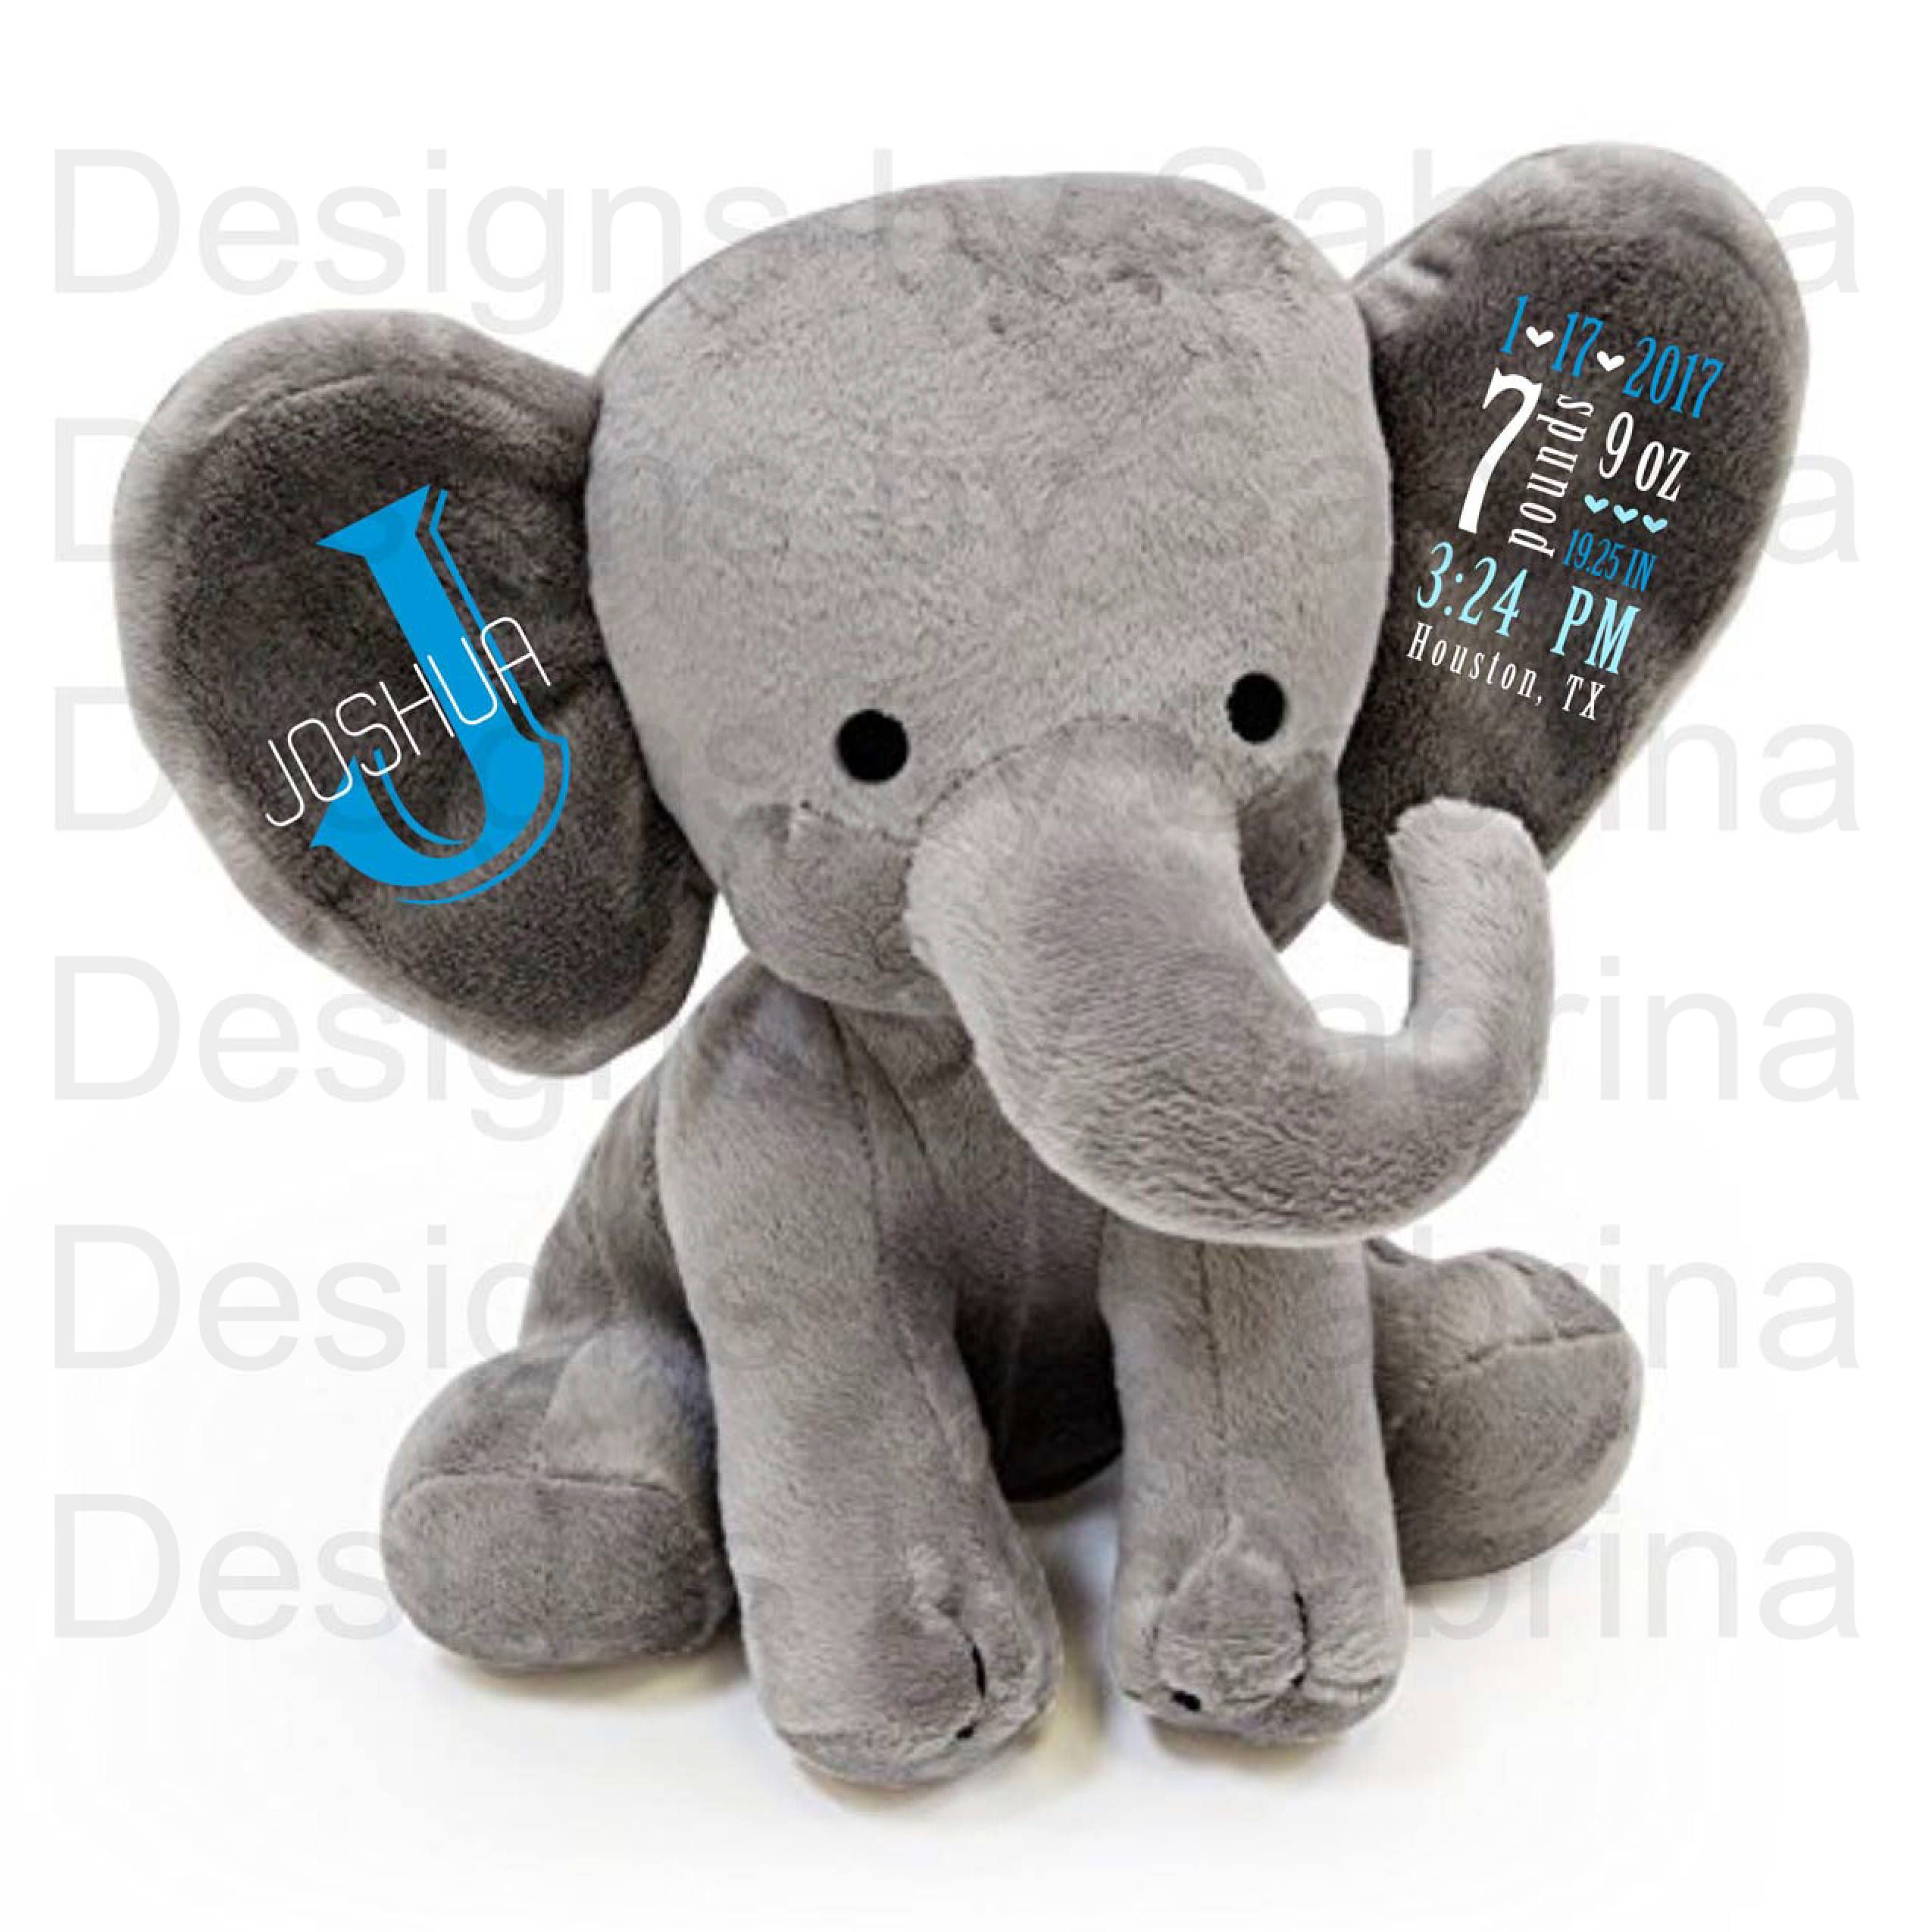 Personalized elephant personalized baby gift baby shower gift baby personalized elephant personalized baby gift baby shower gift baby gift plush elephant negle Gallery